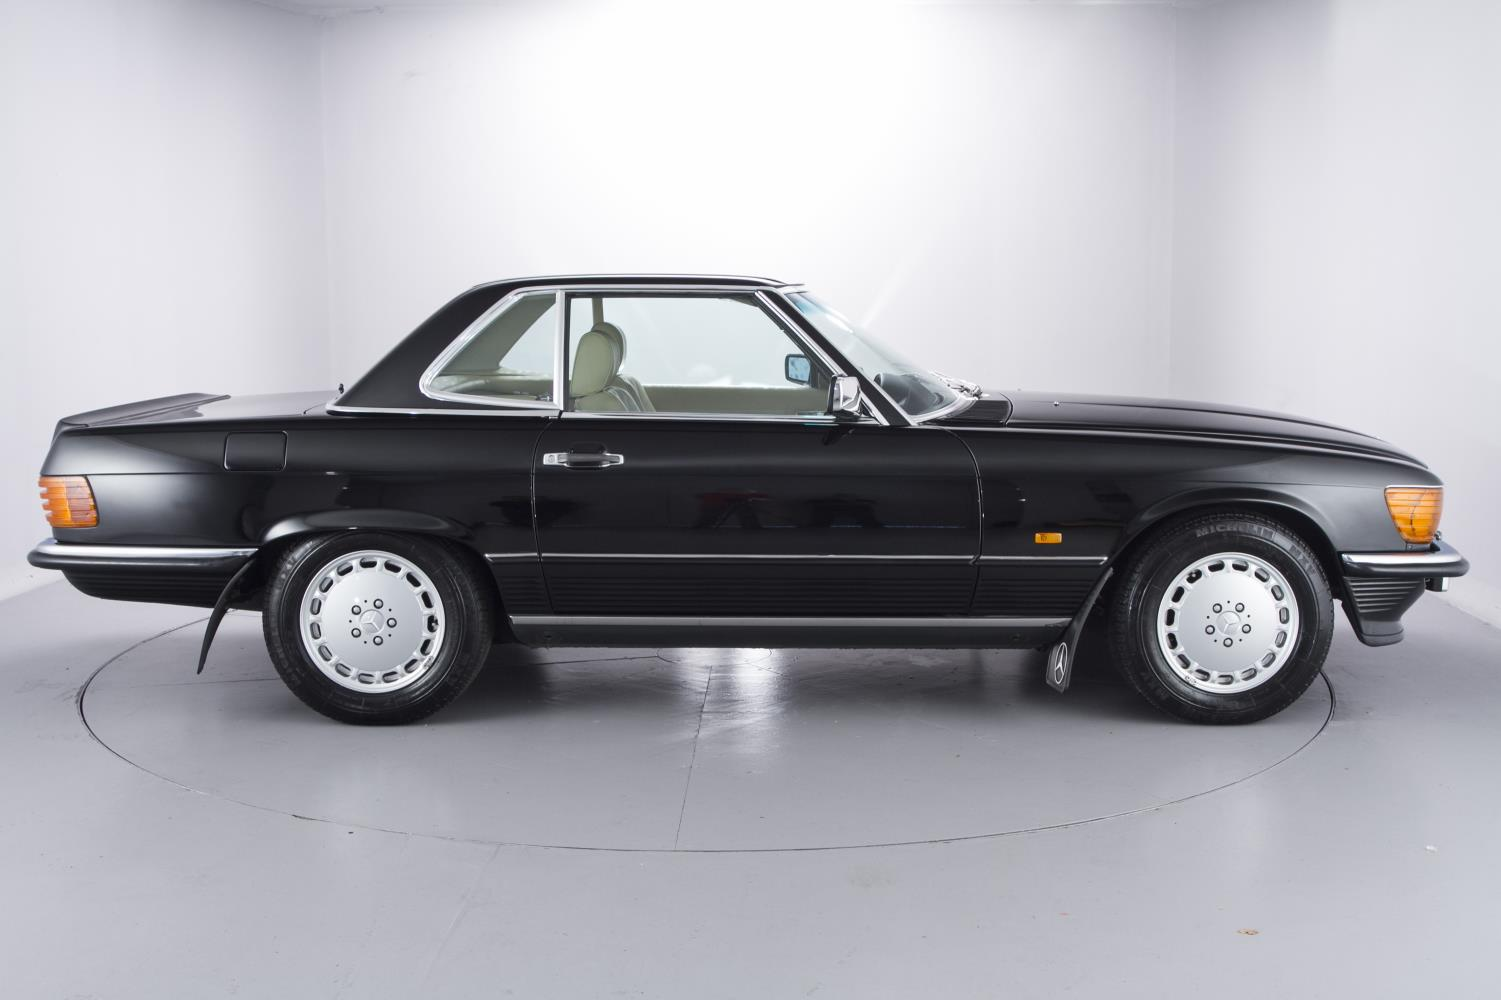 Bobby Ewing Mercedes >> 1989 Mercedes-Benz 500 SL With 965 Miles On The Clock Is Looking For A New Owner - autoevolution